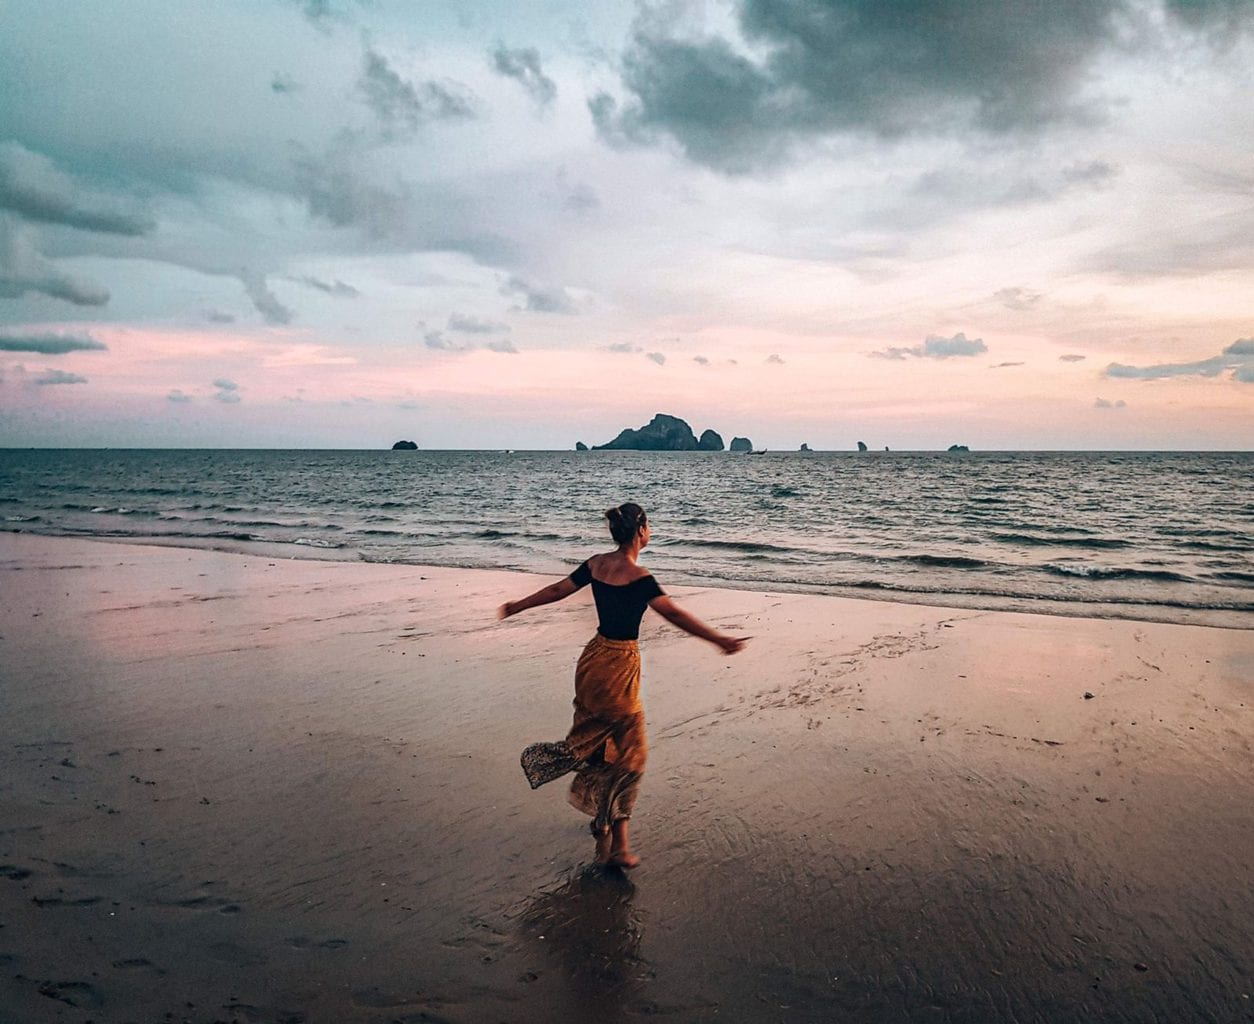 Ultimate sunset captions for Instagram - 50+ of the best